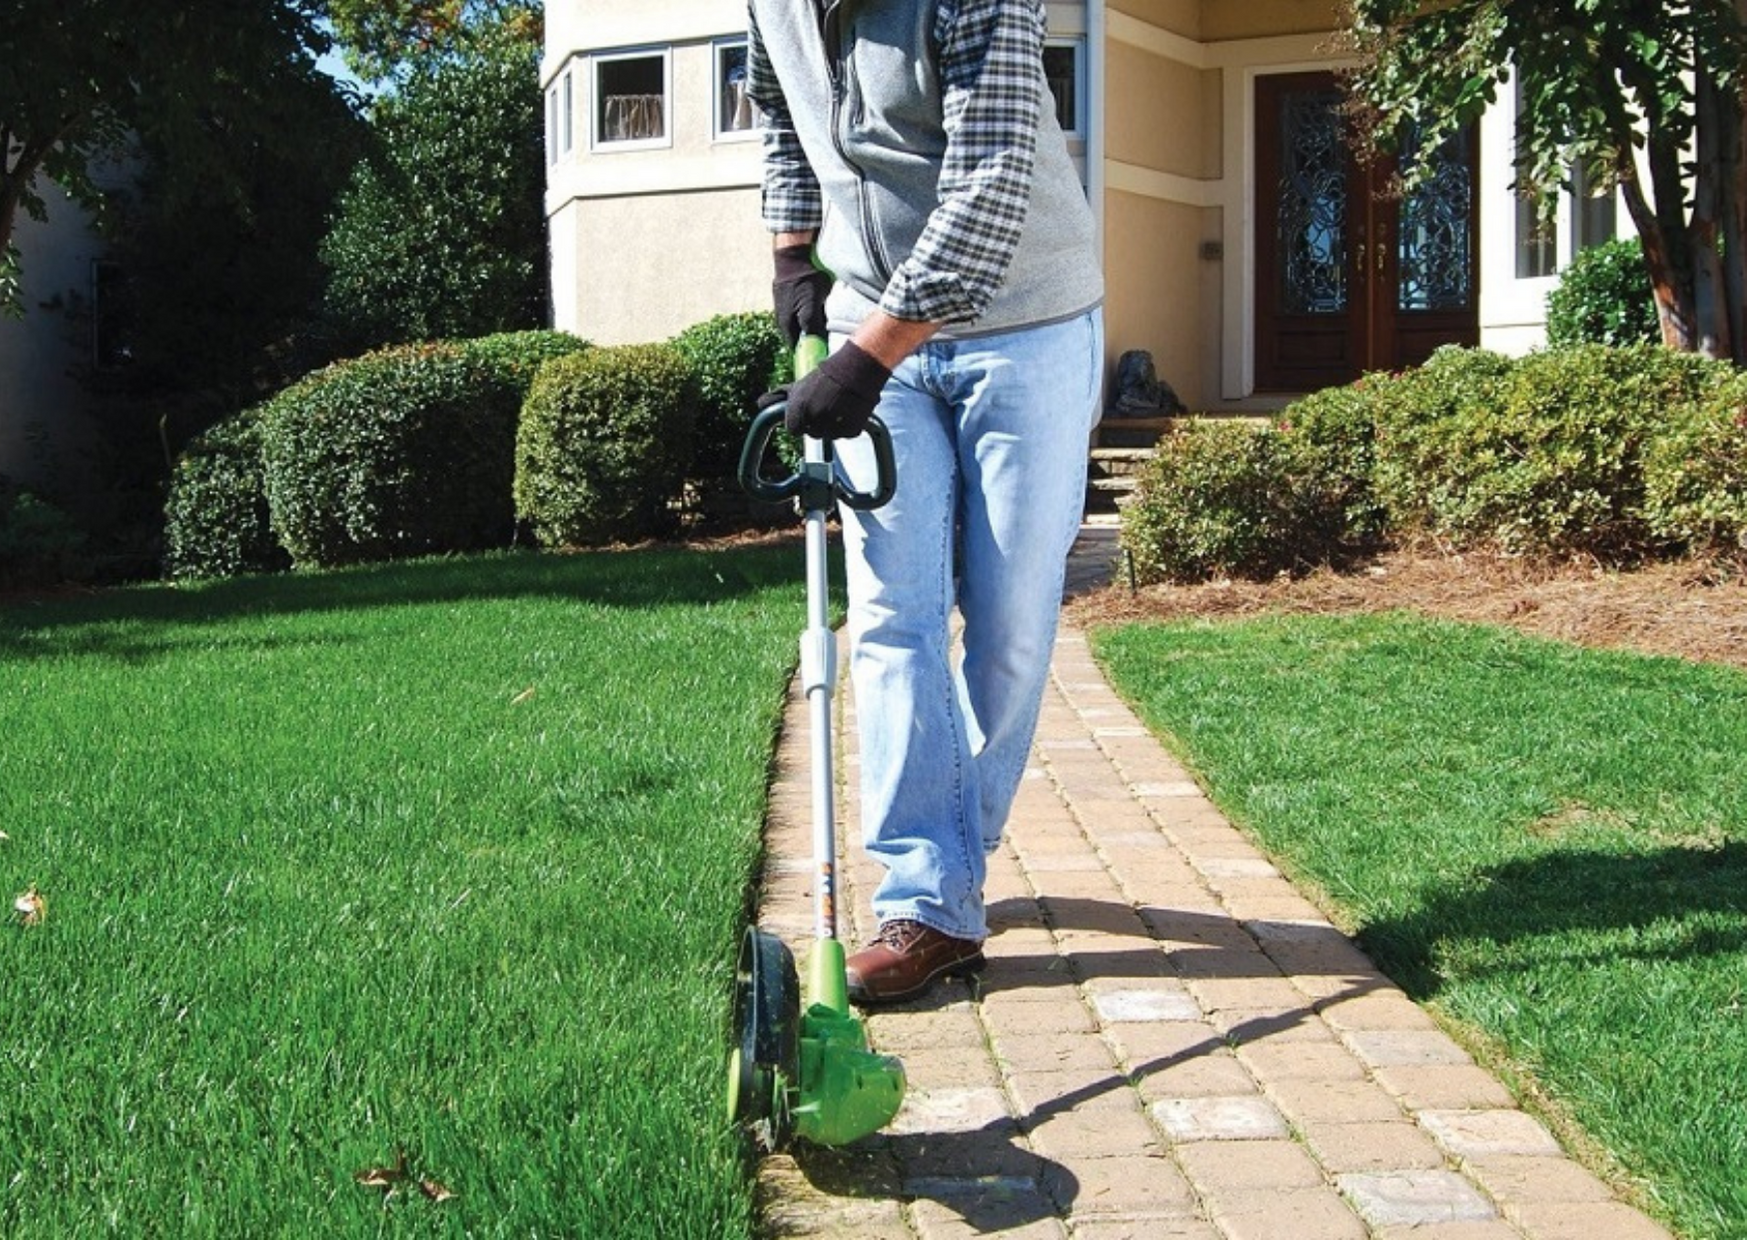 image of a man using a manual lawn edger in his garden